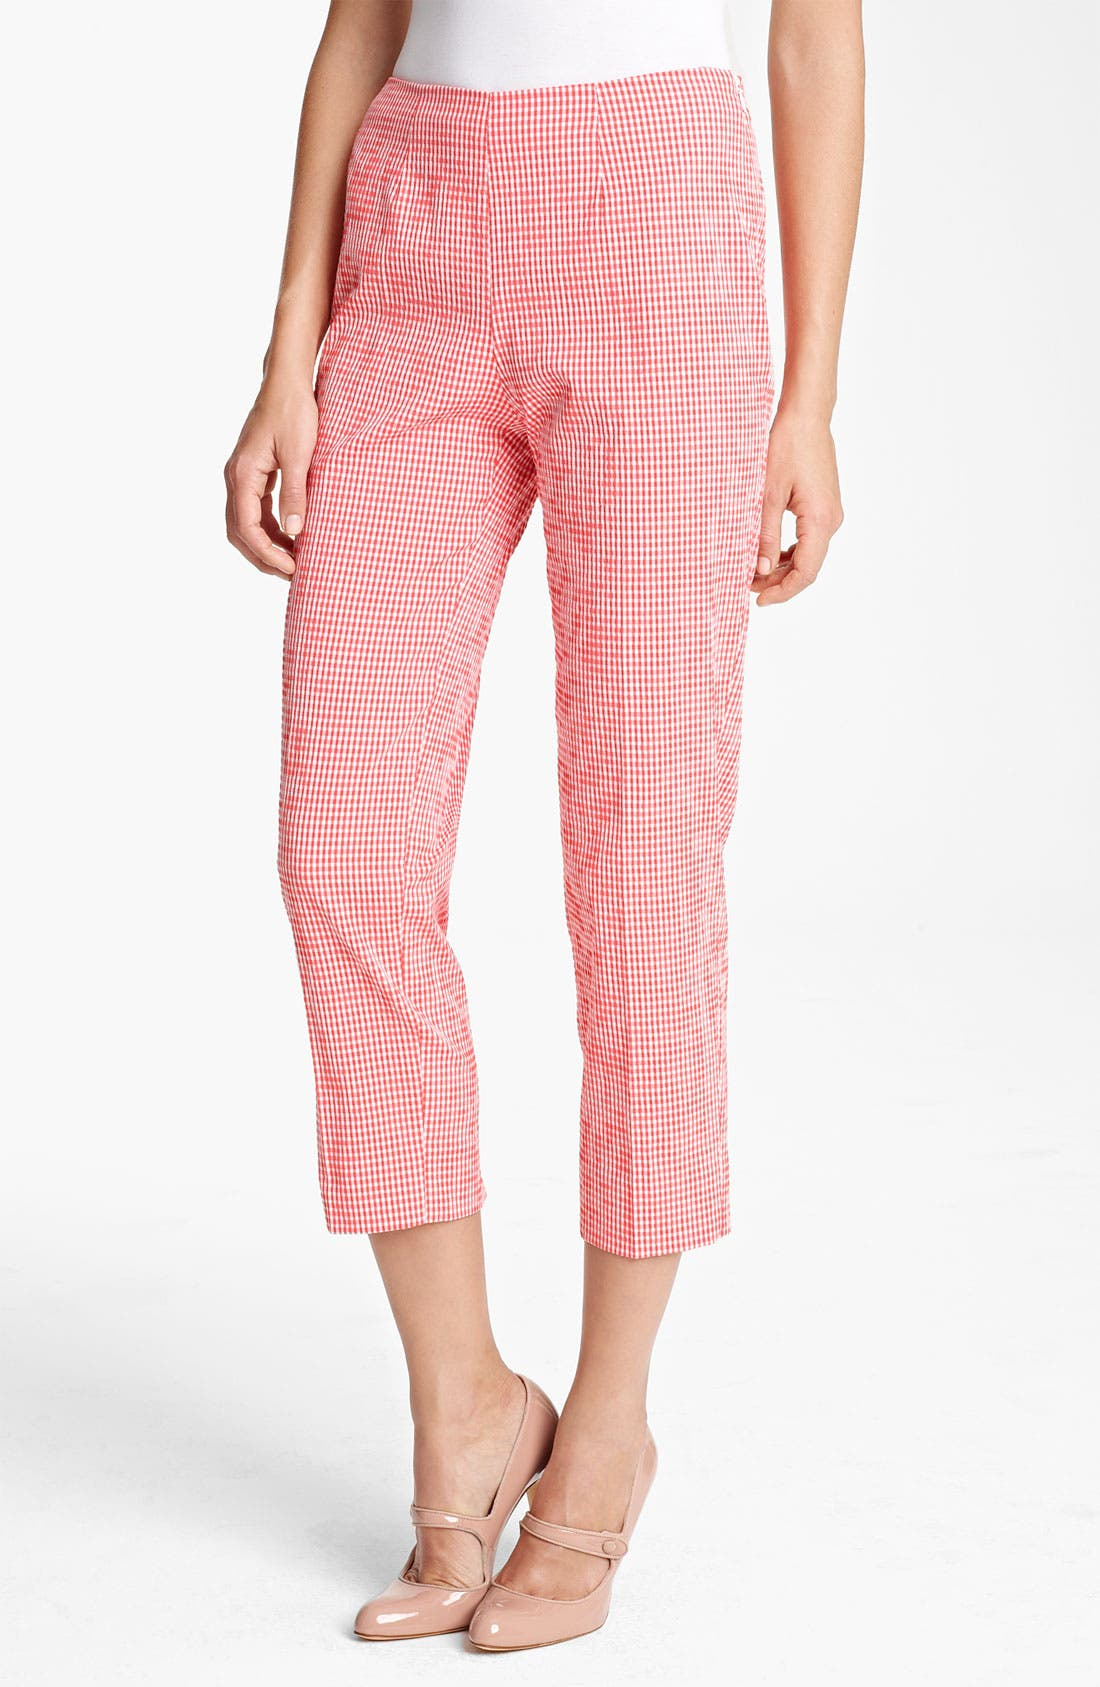 Alternate Image 1 Selected - Piazza Sempione 'Audrey' Gingham Stretch Cotton Pants